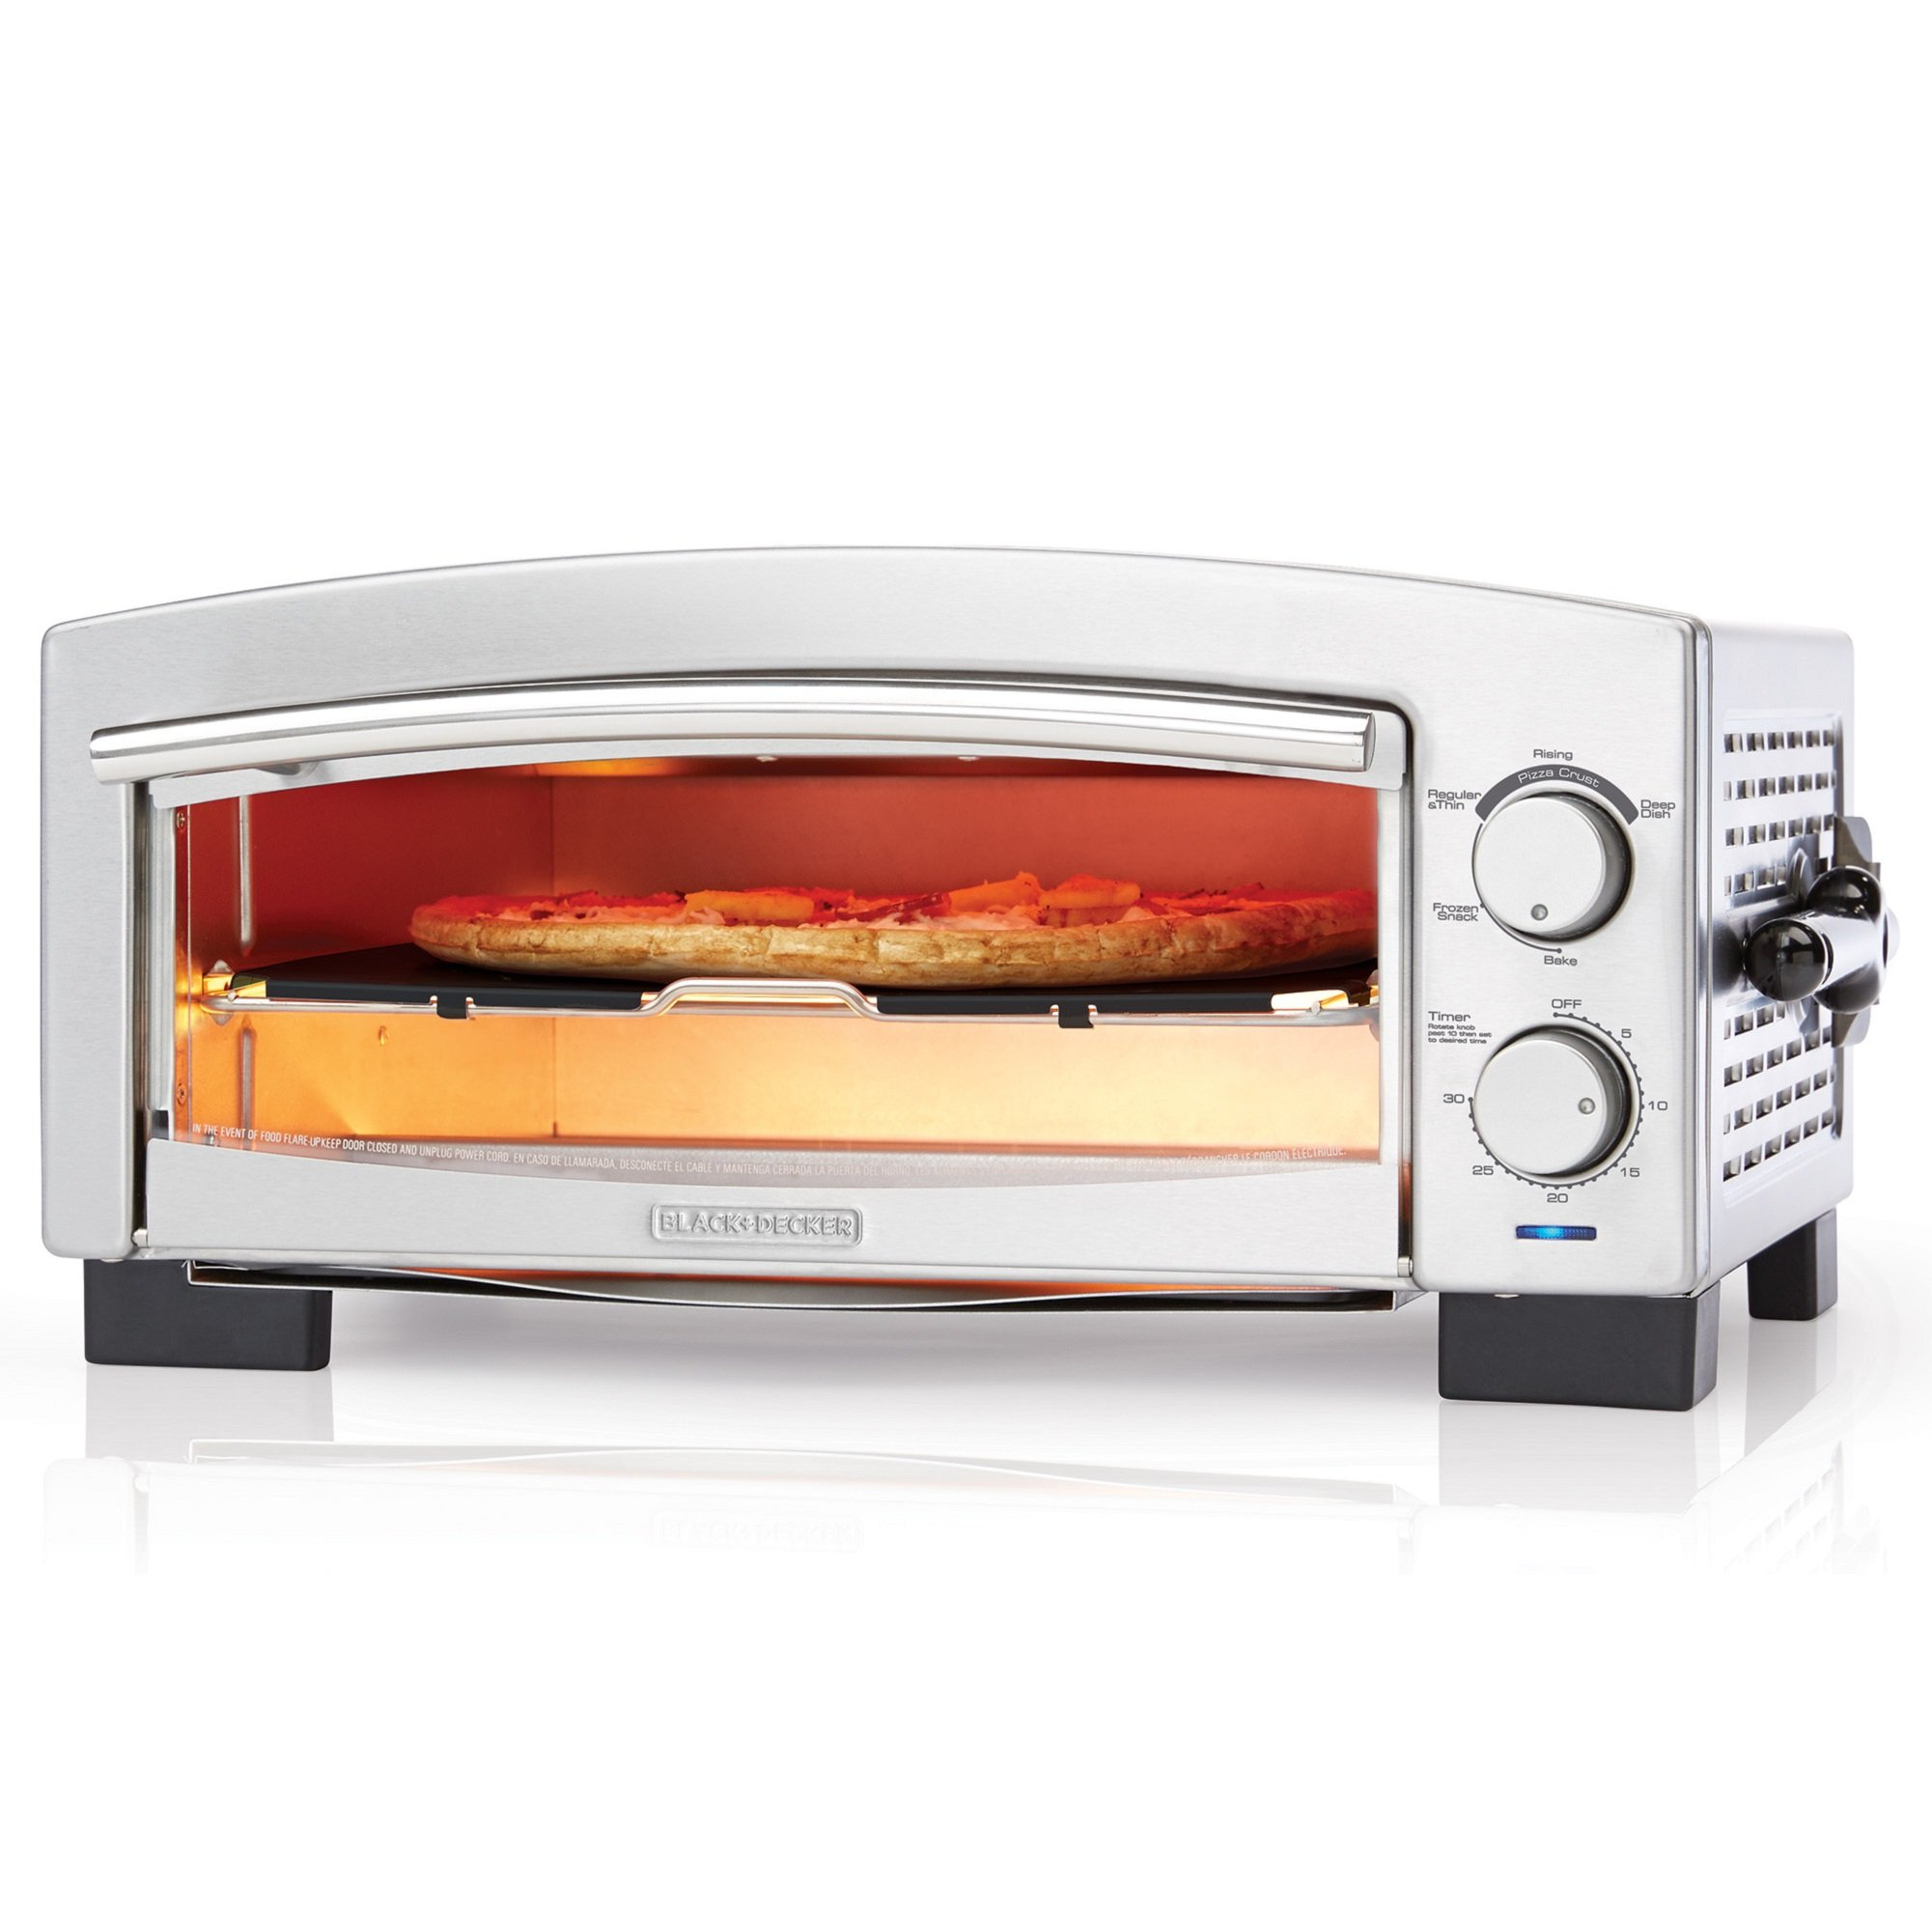 BLACK+DECKER P300S 5-Minute Pizza Oven & Snack Maker, Toaster Oven, Stainless Steel, Silver by Black & Decker